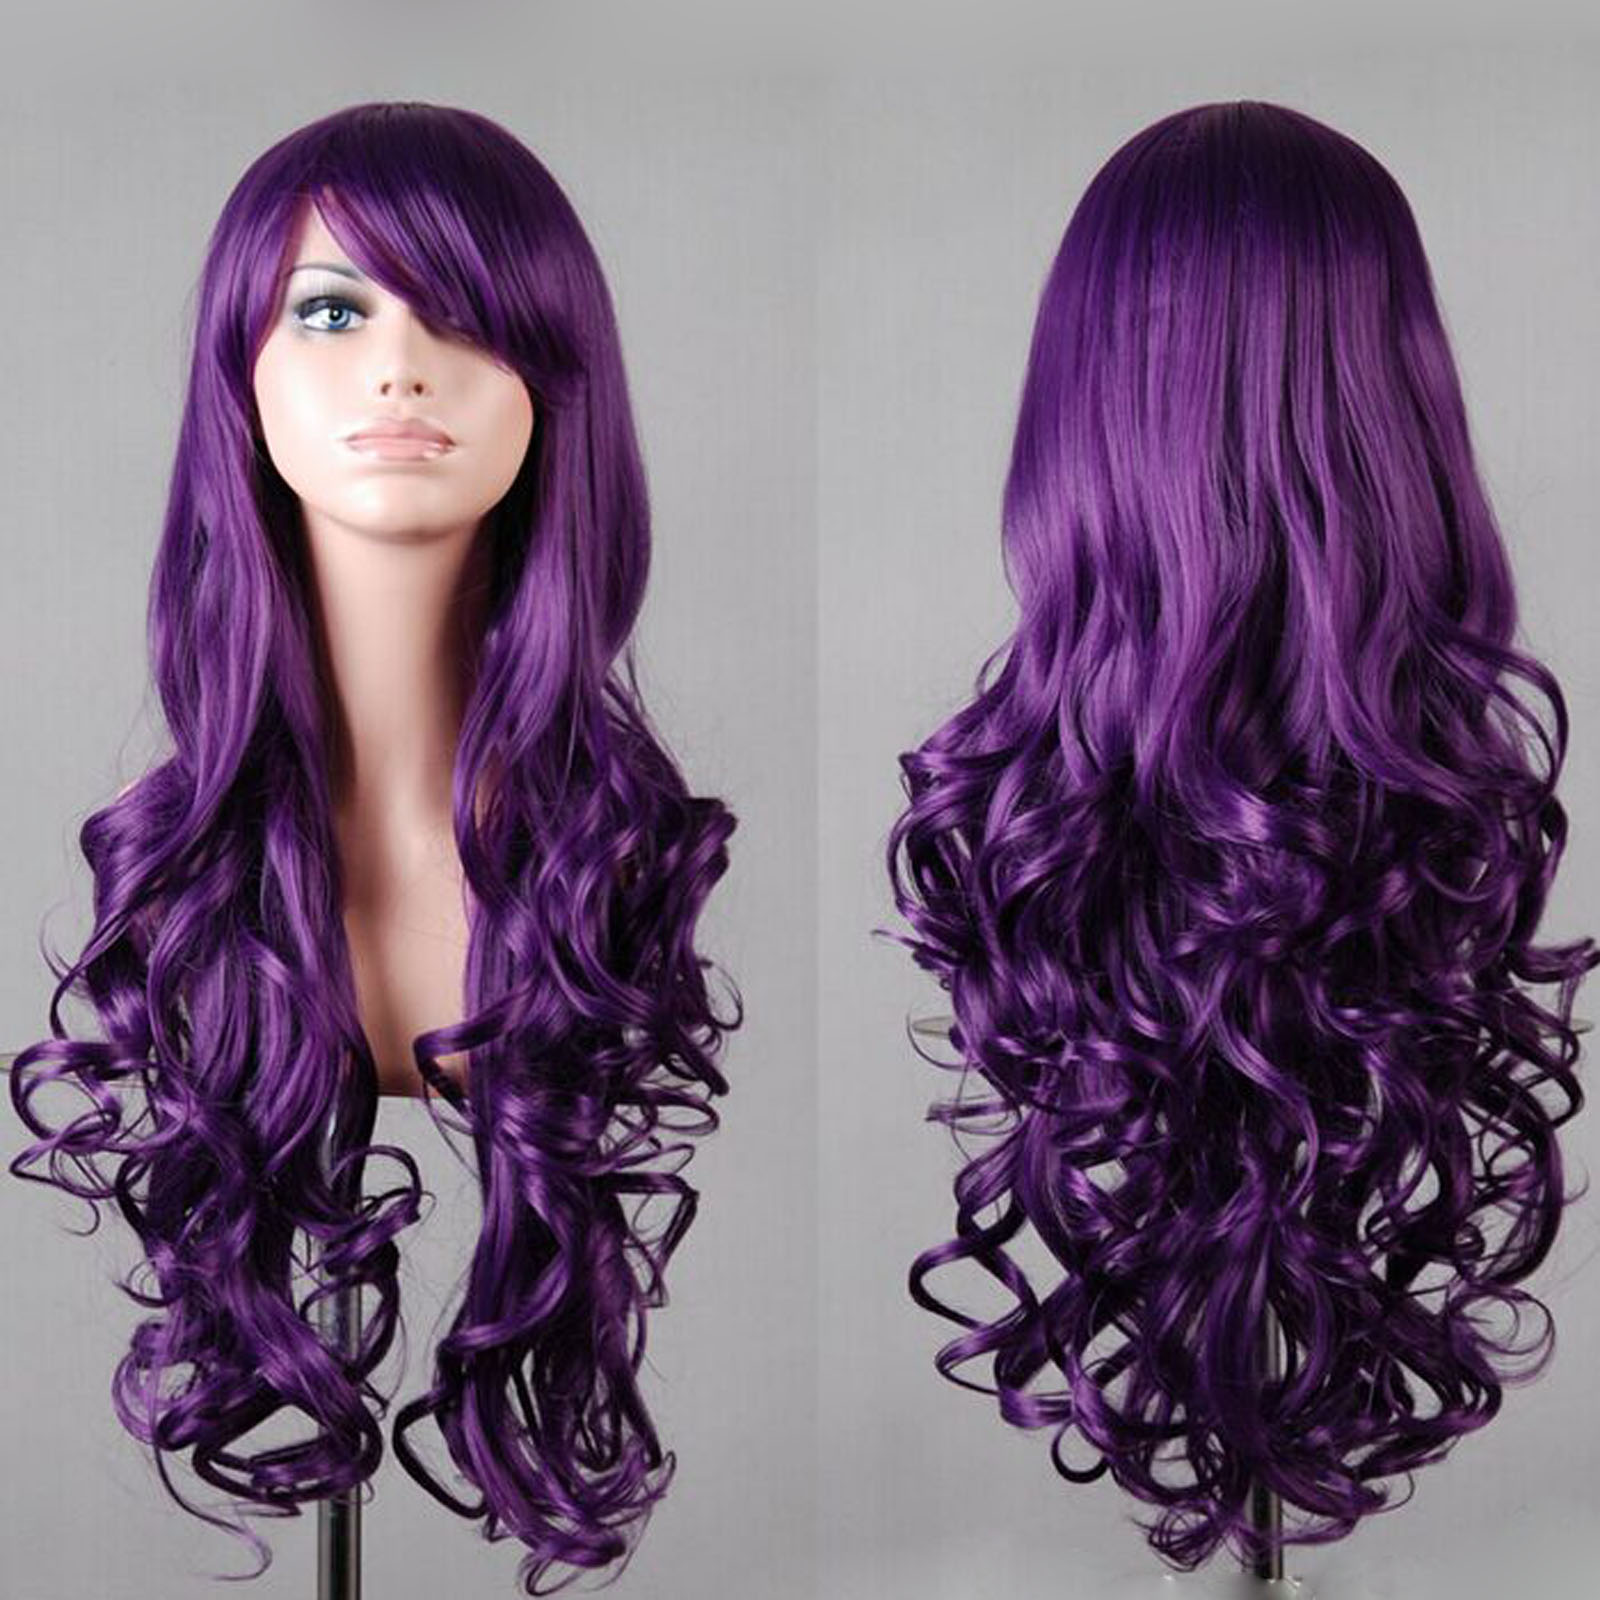 New Fashion Womens Long Wavy Curly Hair Anime Cosplay Party Full Wig & Cap 32""